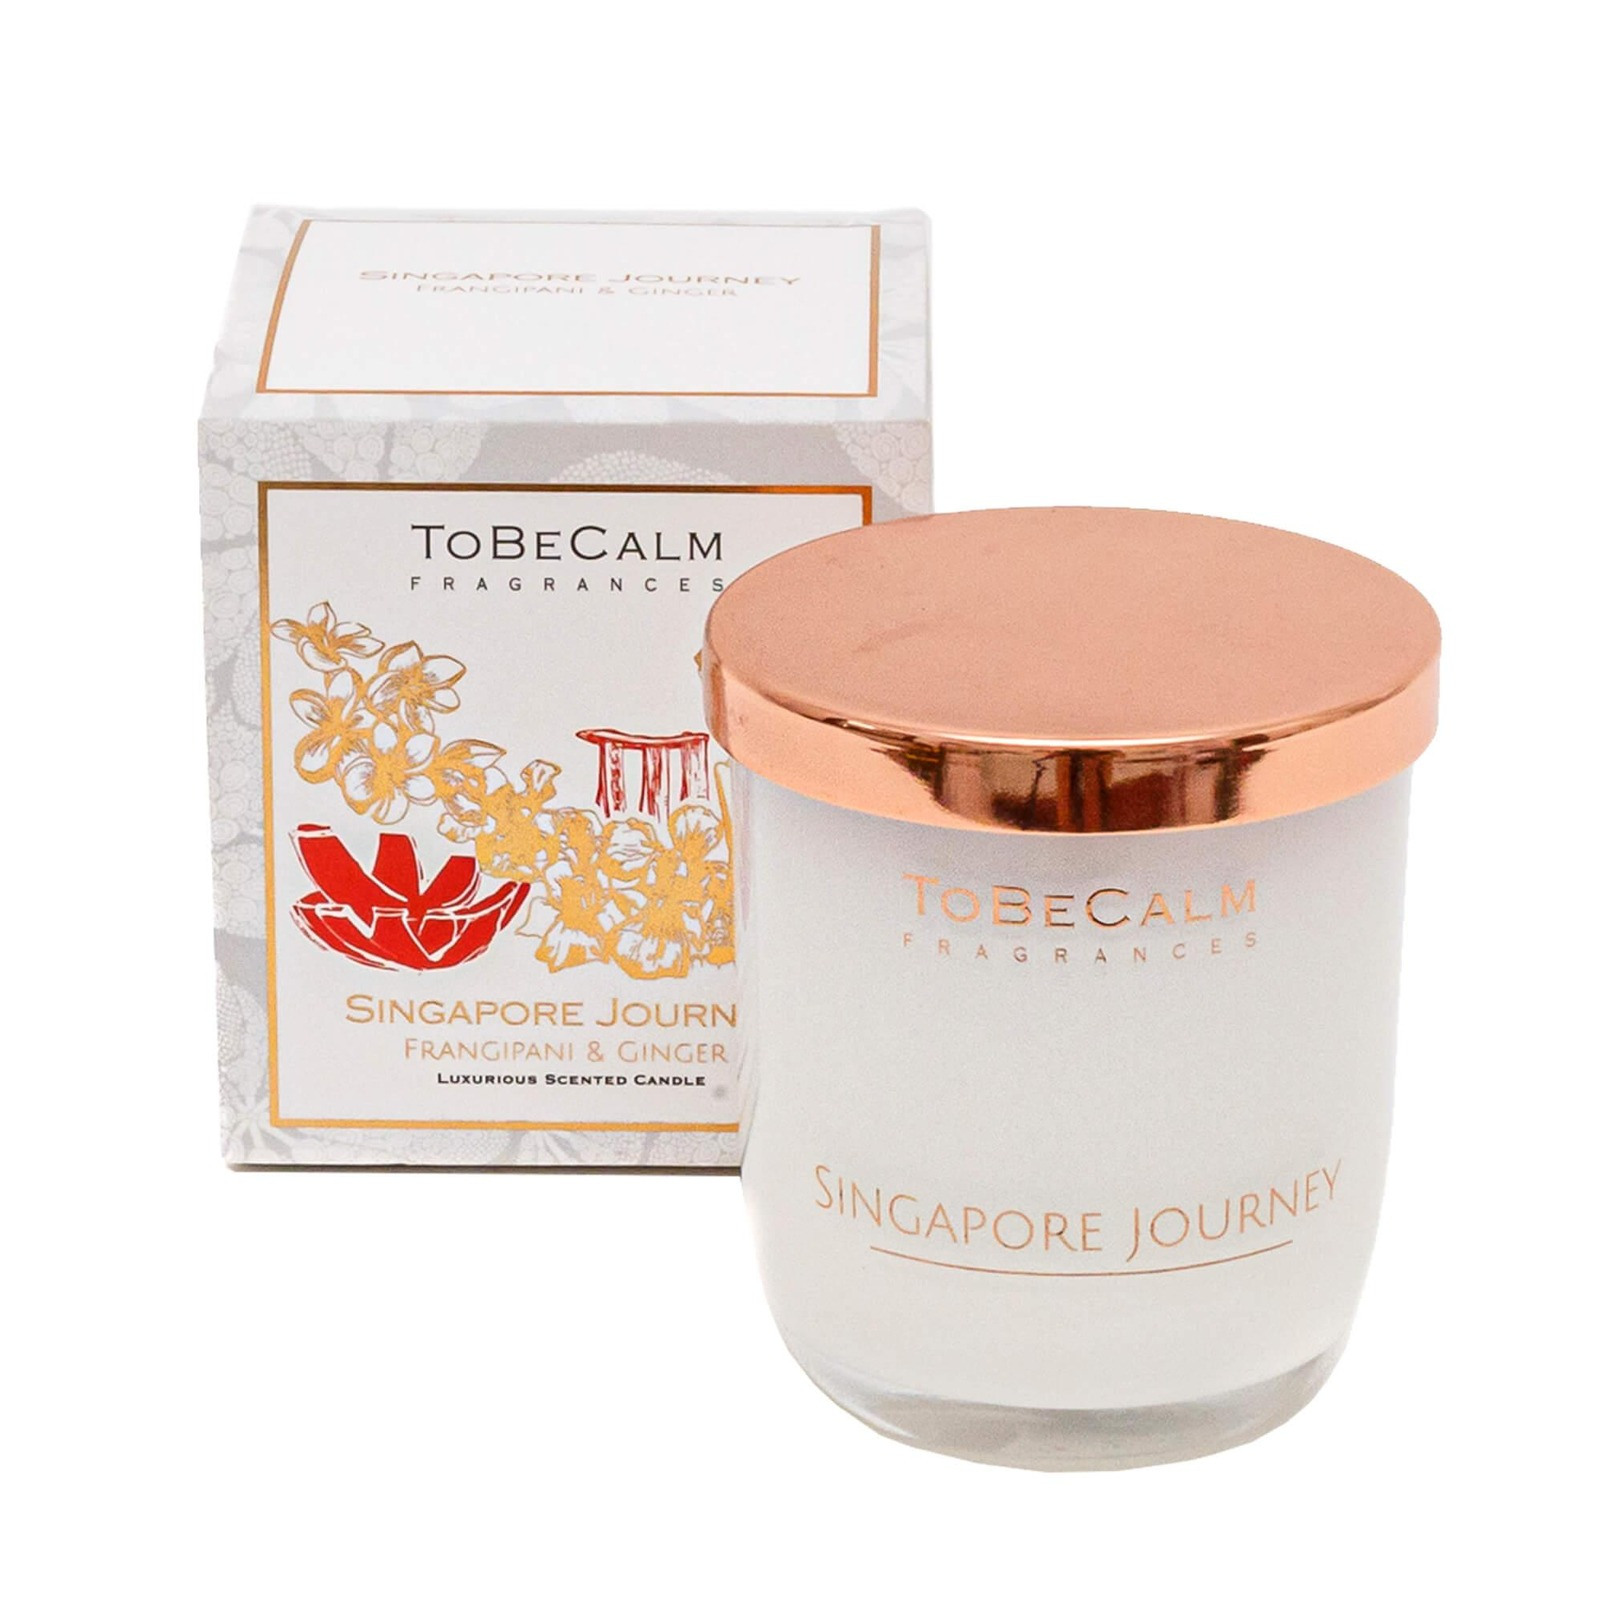 To Be Calm Singapore Journey - Medium Soy Candle